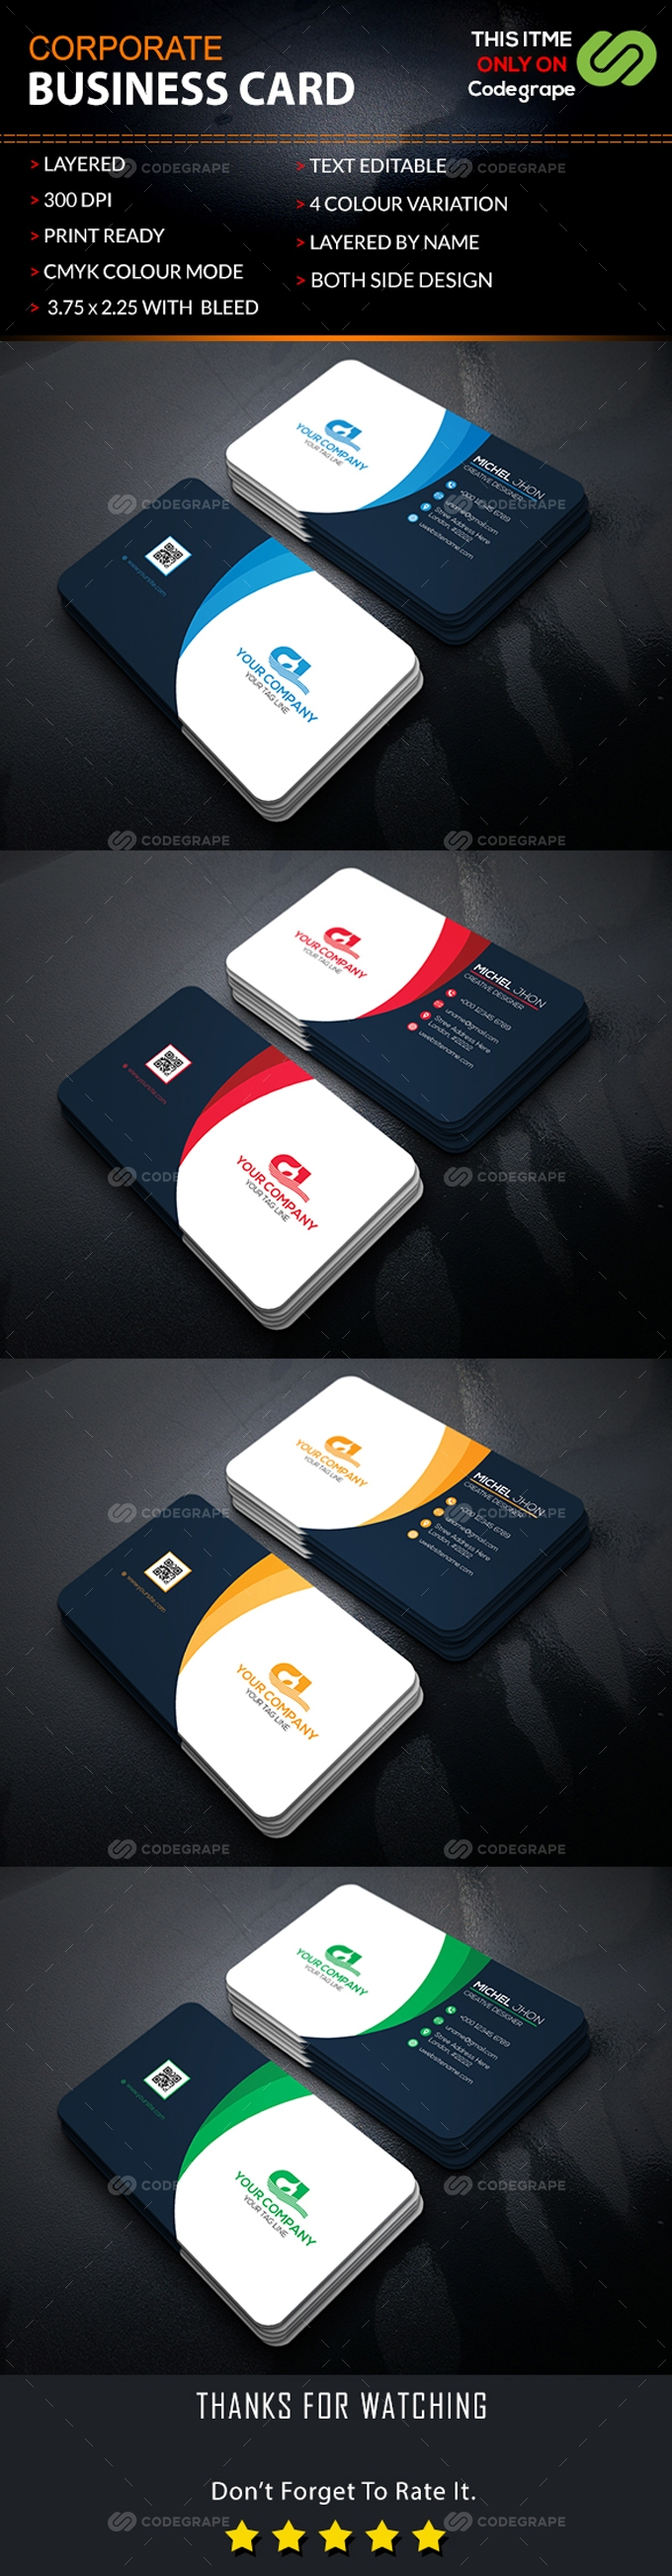 Mordern Corporate Business Card